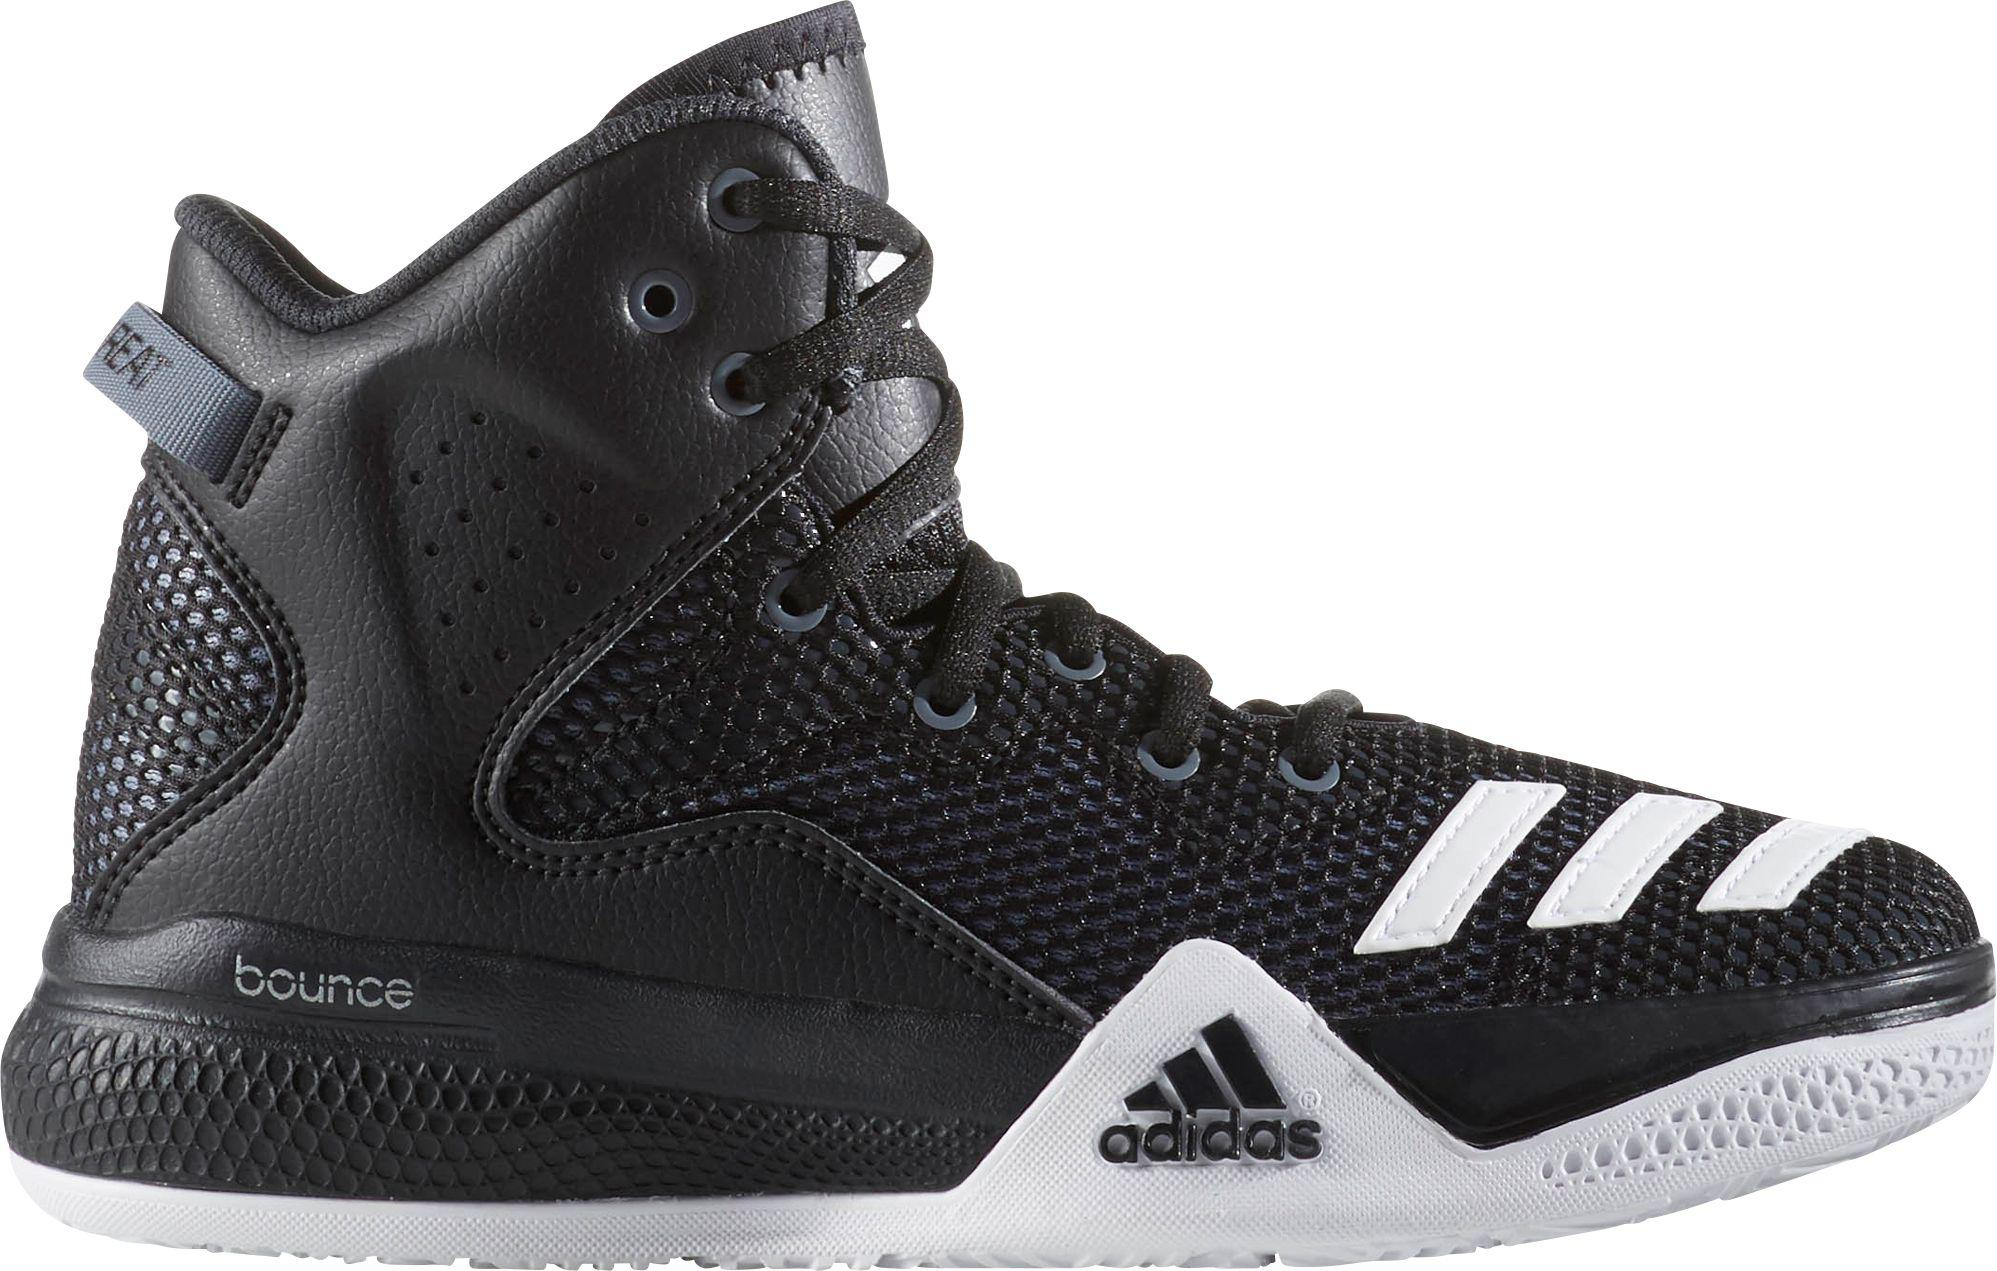 low priced 6f6c2 a9daf Lyst - adidas Dual Threat Basketball Shoes in Black for Men